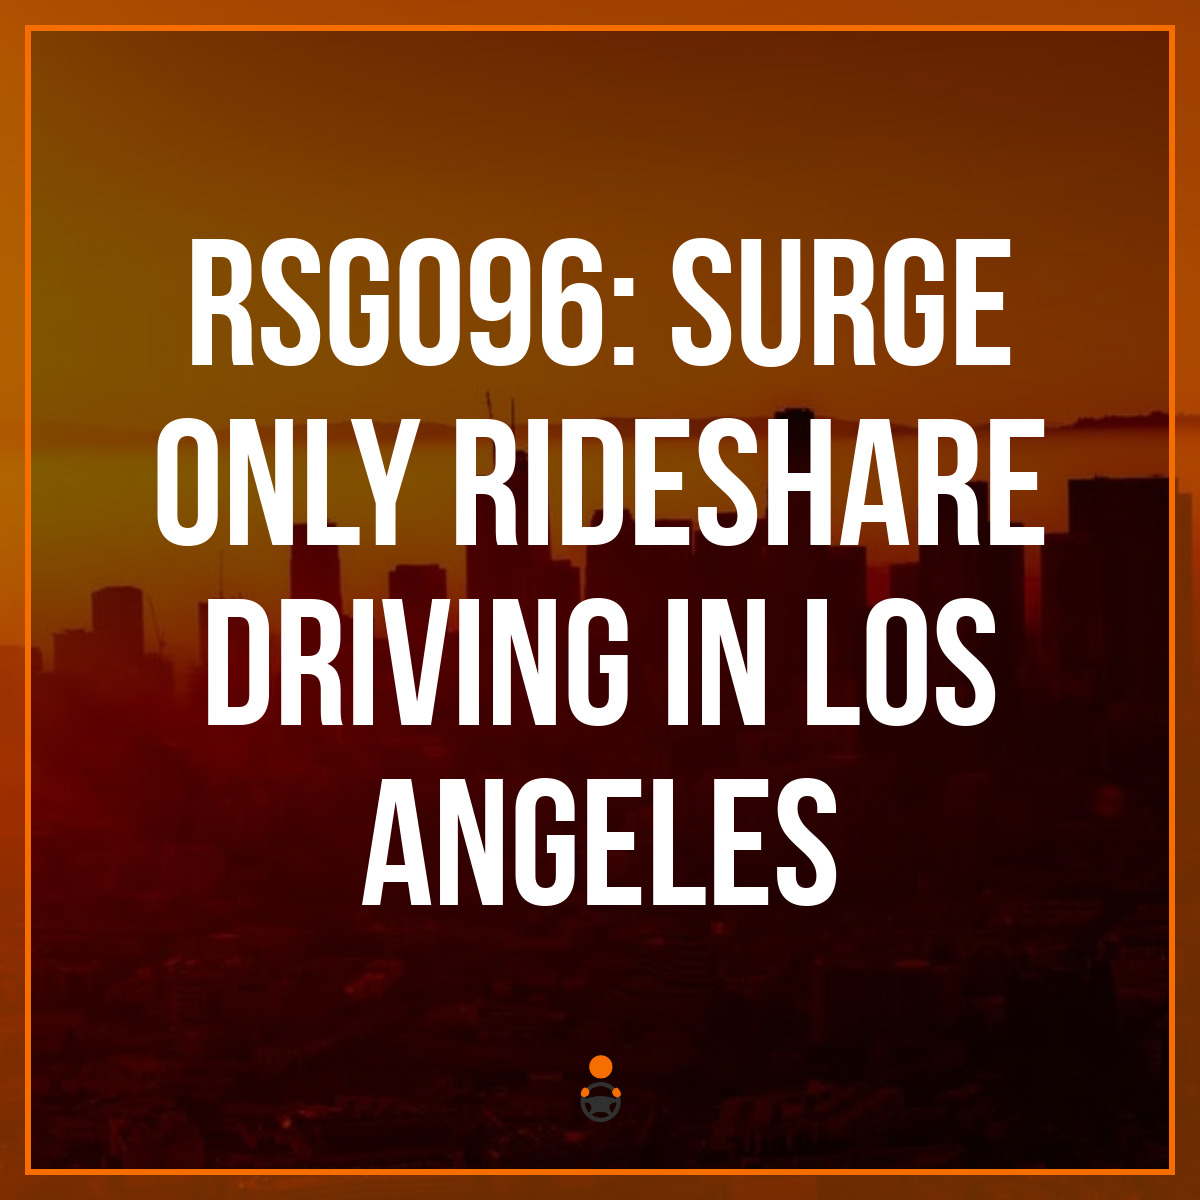 RSG096: Surge Only Rideshare Driving in Los Angeles